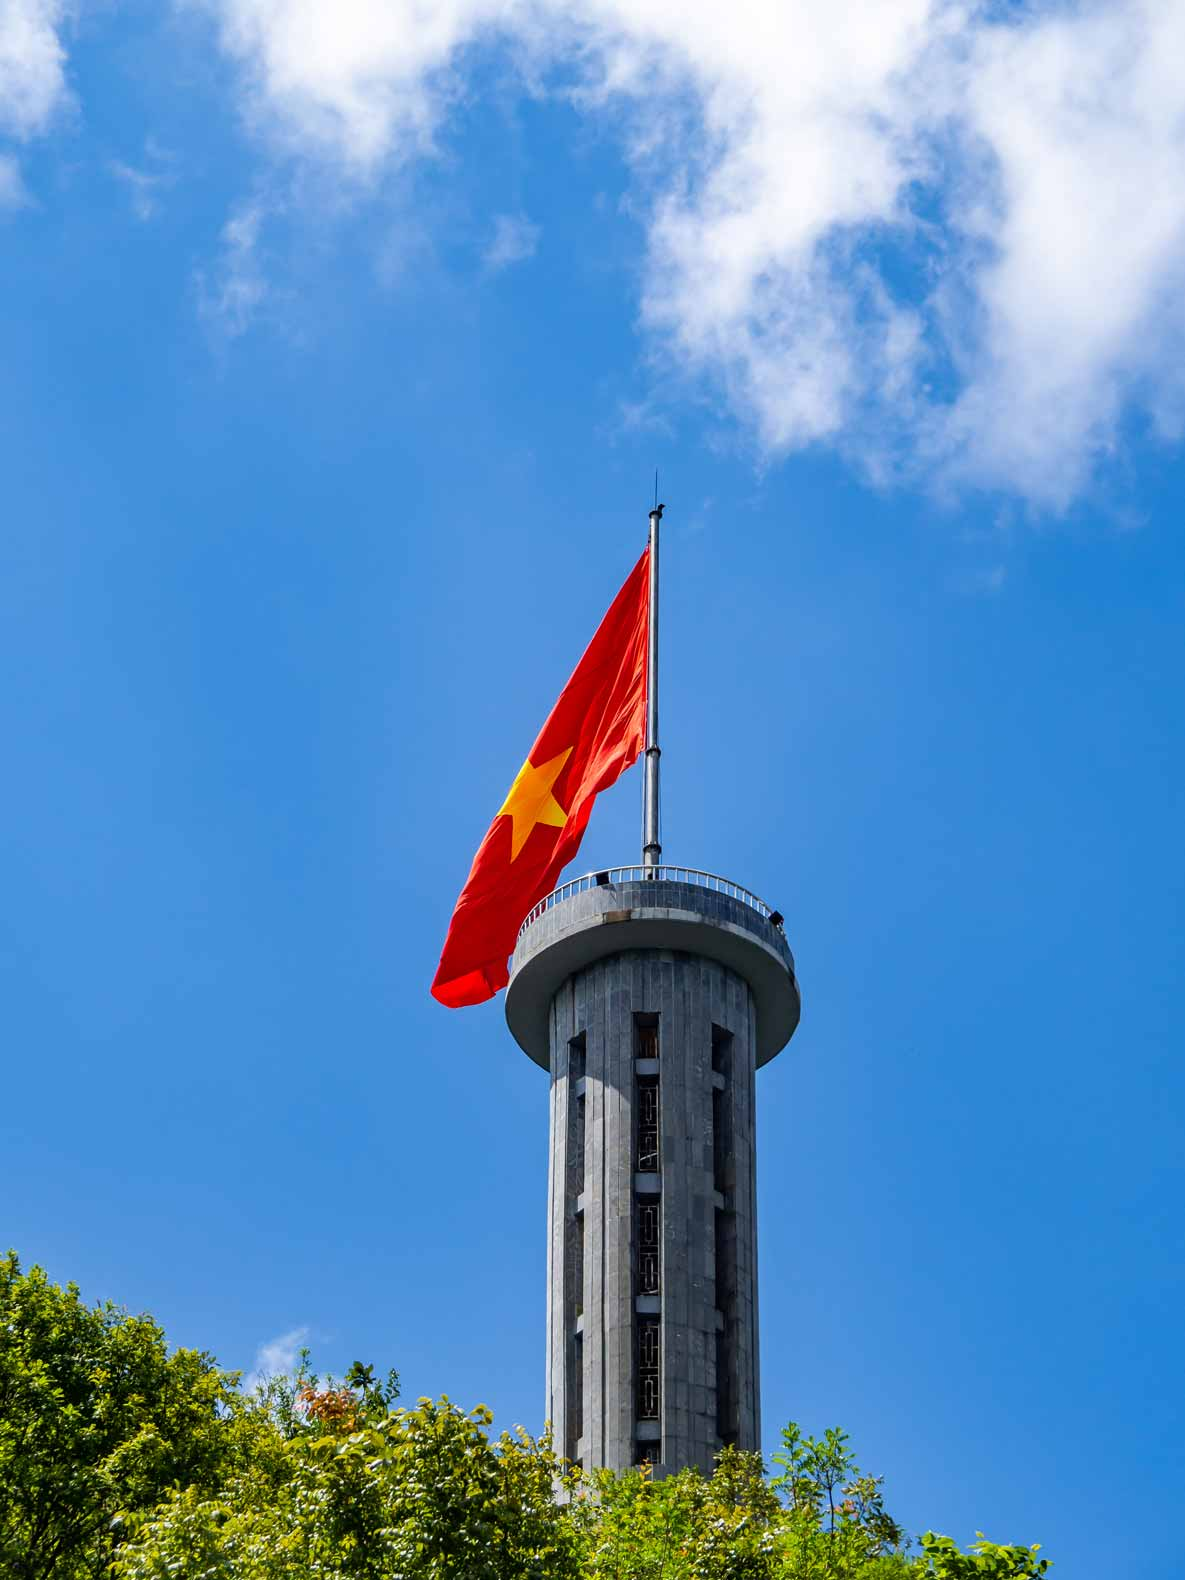 The Lung Cu Flagpole in the most northern part of Vietnam